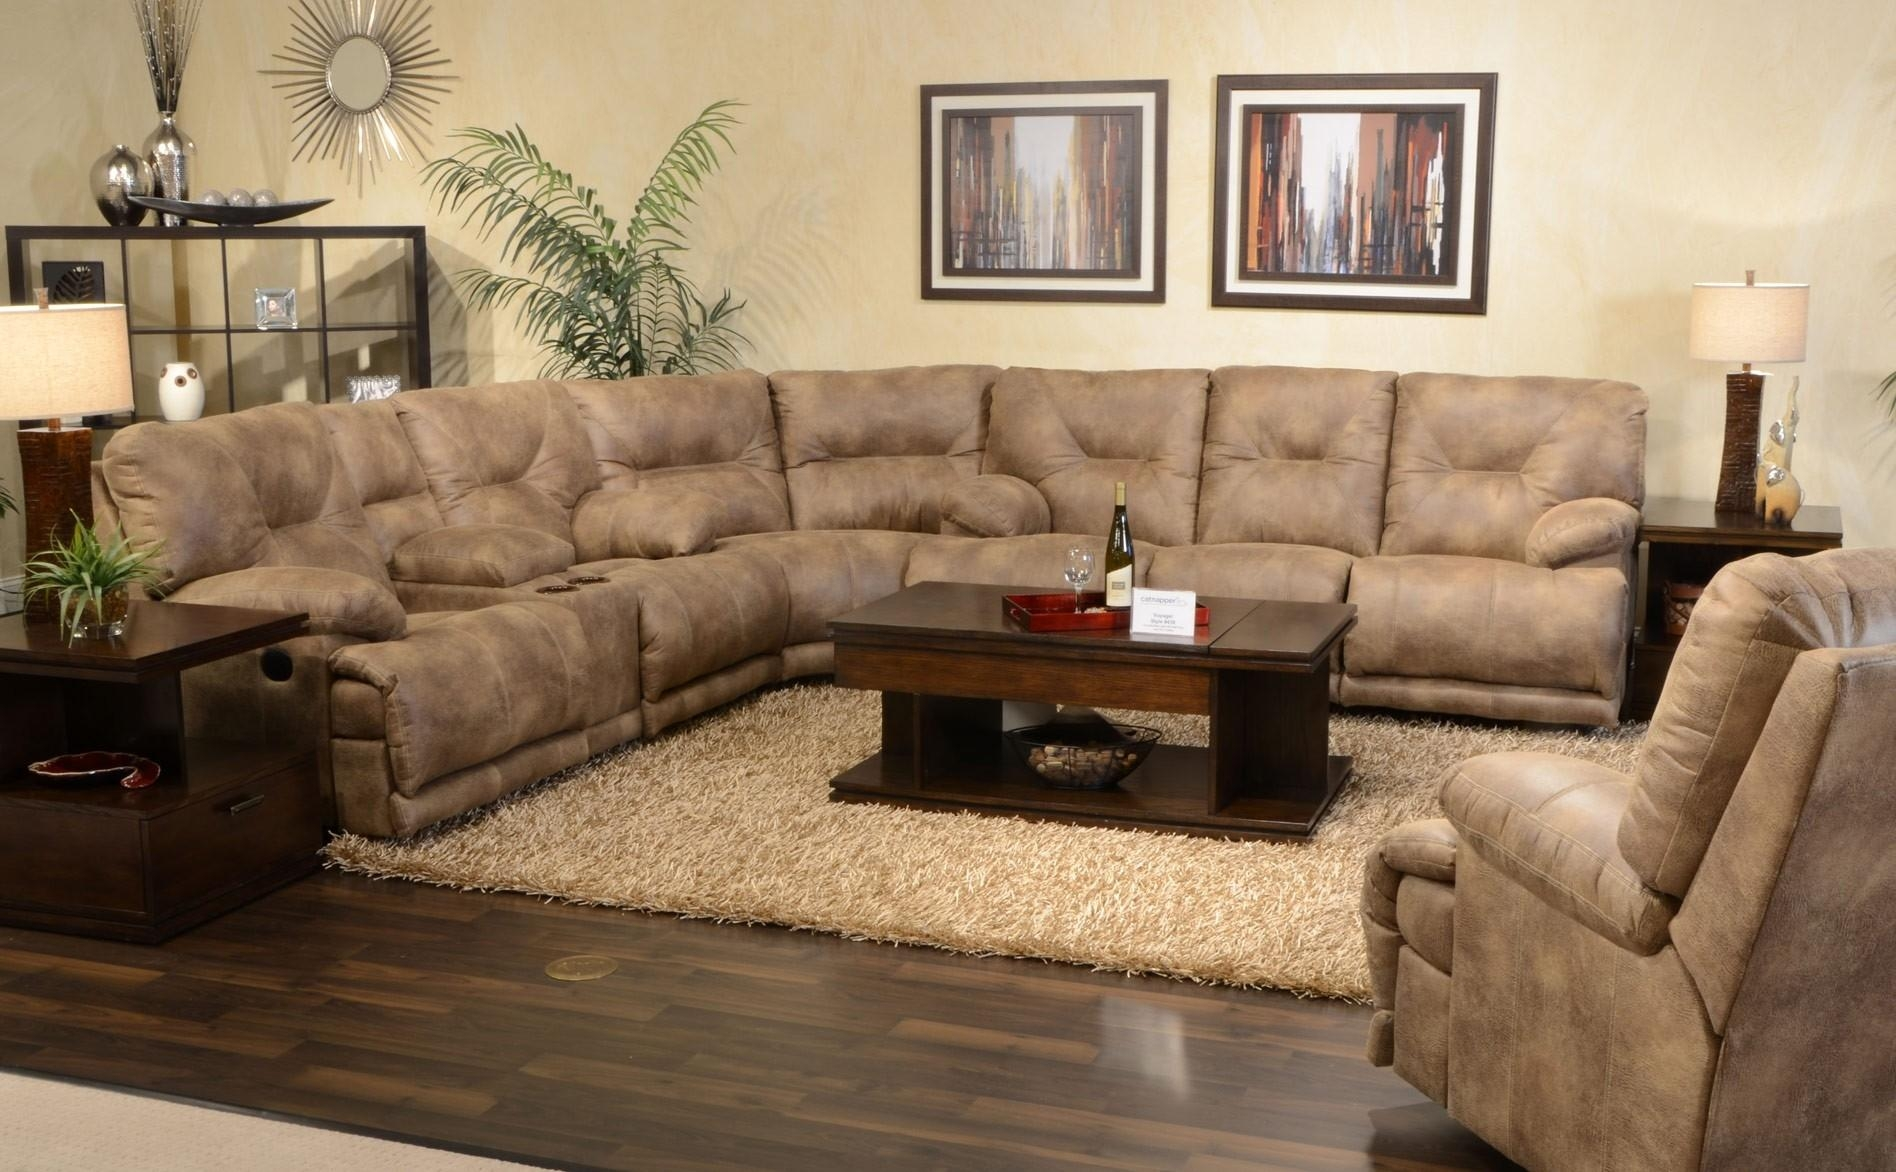 thomasville benjamin leather sofa sofas camas cruces madrid 20 best sectionals ideas